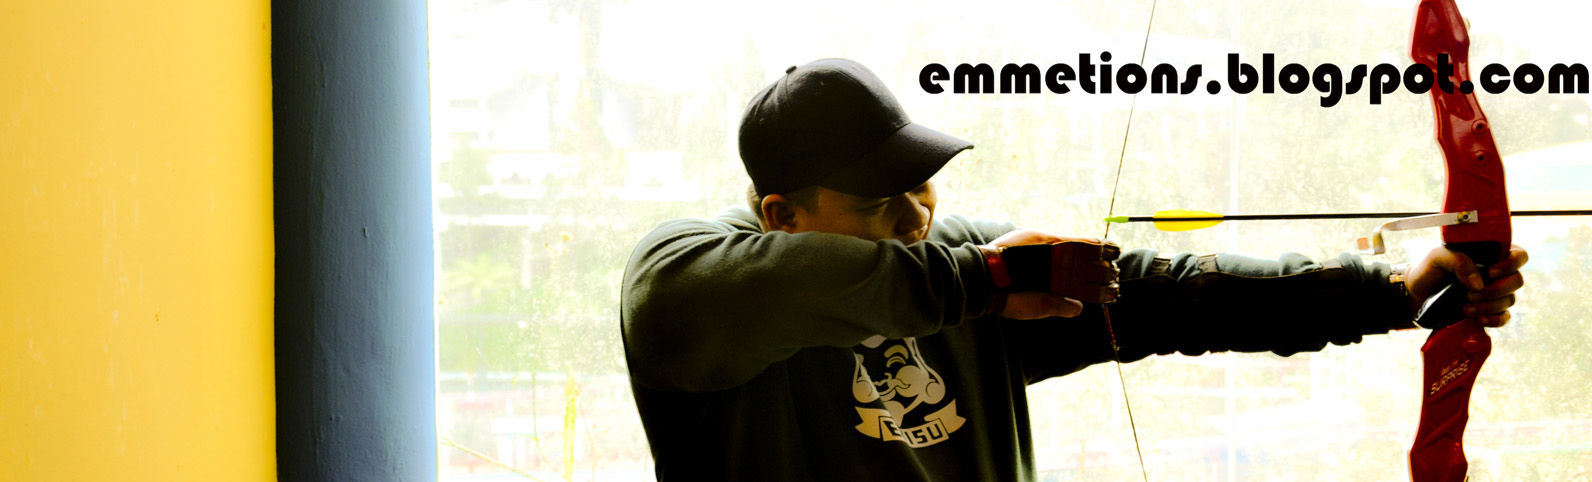 emmetions.blogspot.com